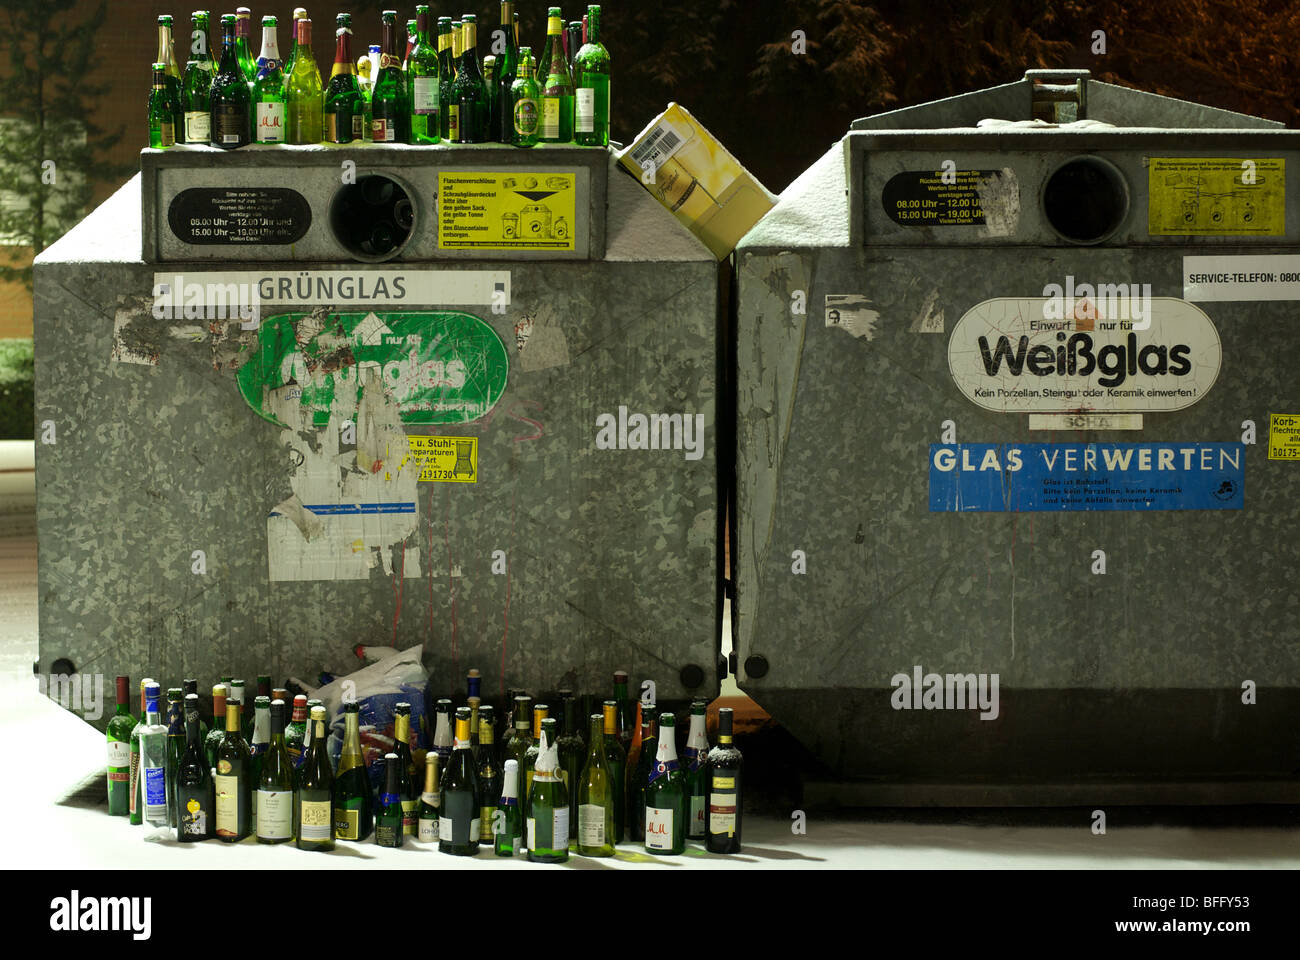 Full bottle bank after Christmas and New Year celebrations - Stock Image